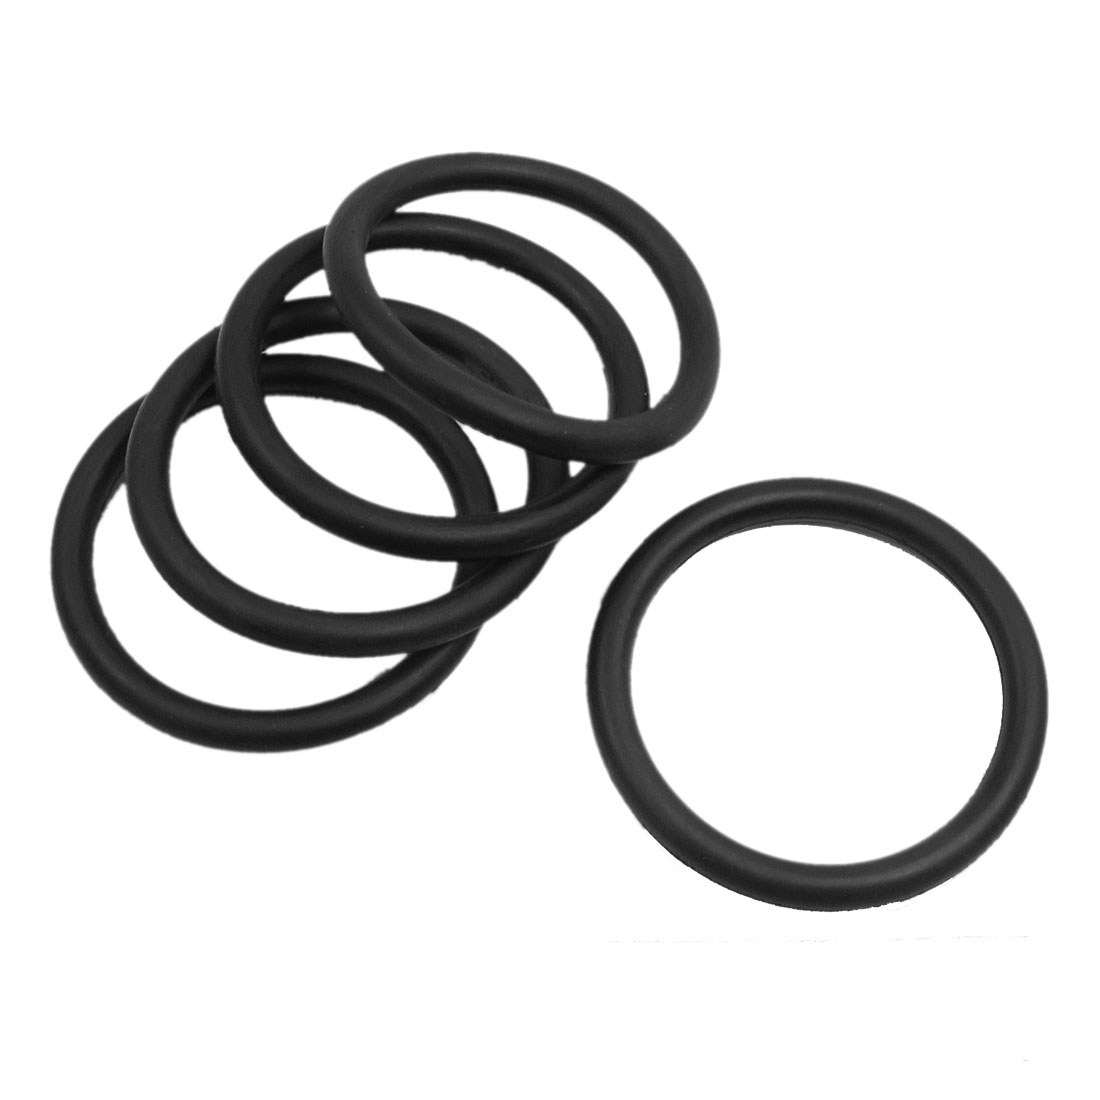 5 Pcs 50mm Outside Dia 5mm Thick Sealing Washers Oil Filter O Rings